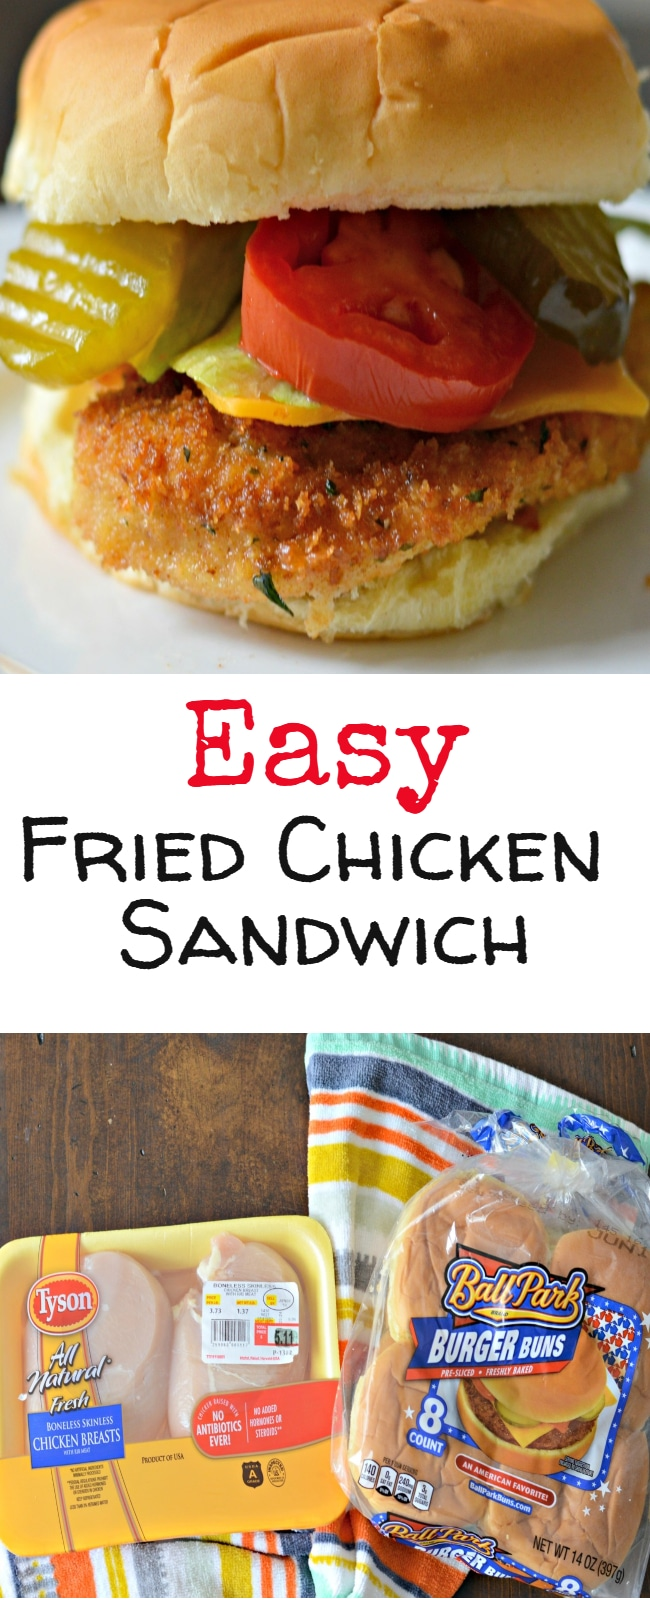 One of my favorite recipes to make, wrap up, and take on these trips is this easy homemade fried chicken sandwich recipe.